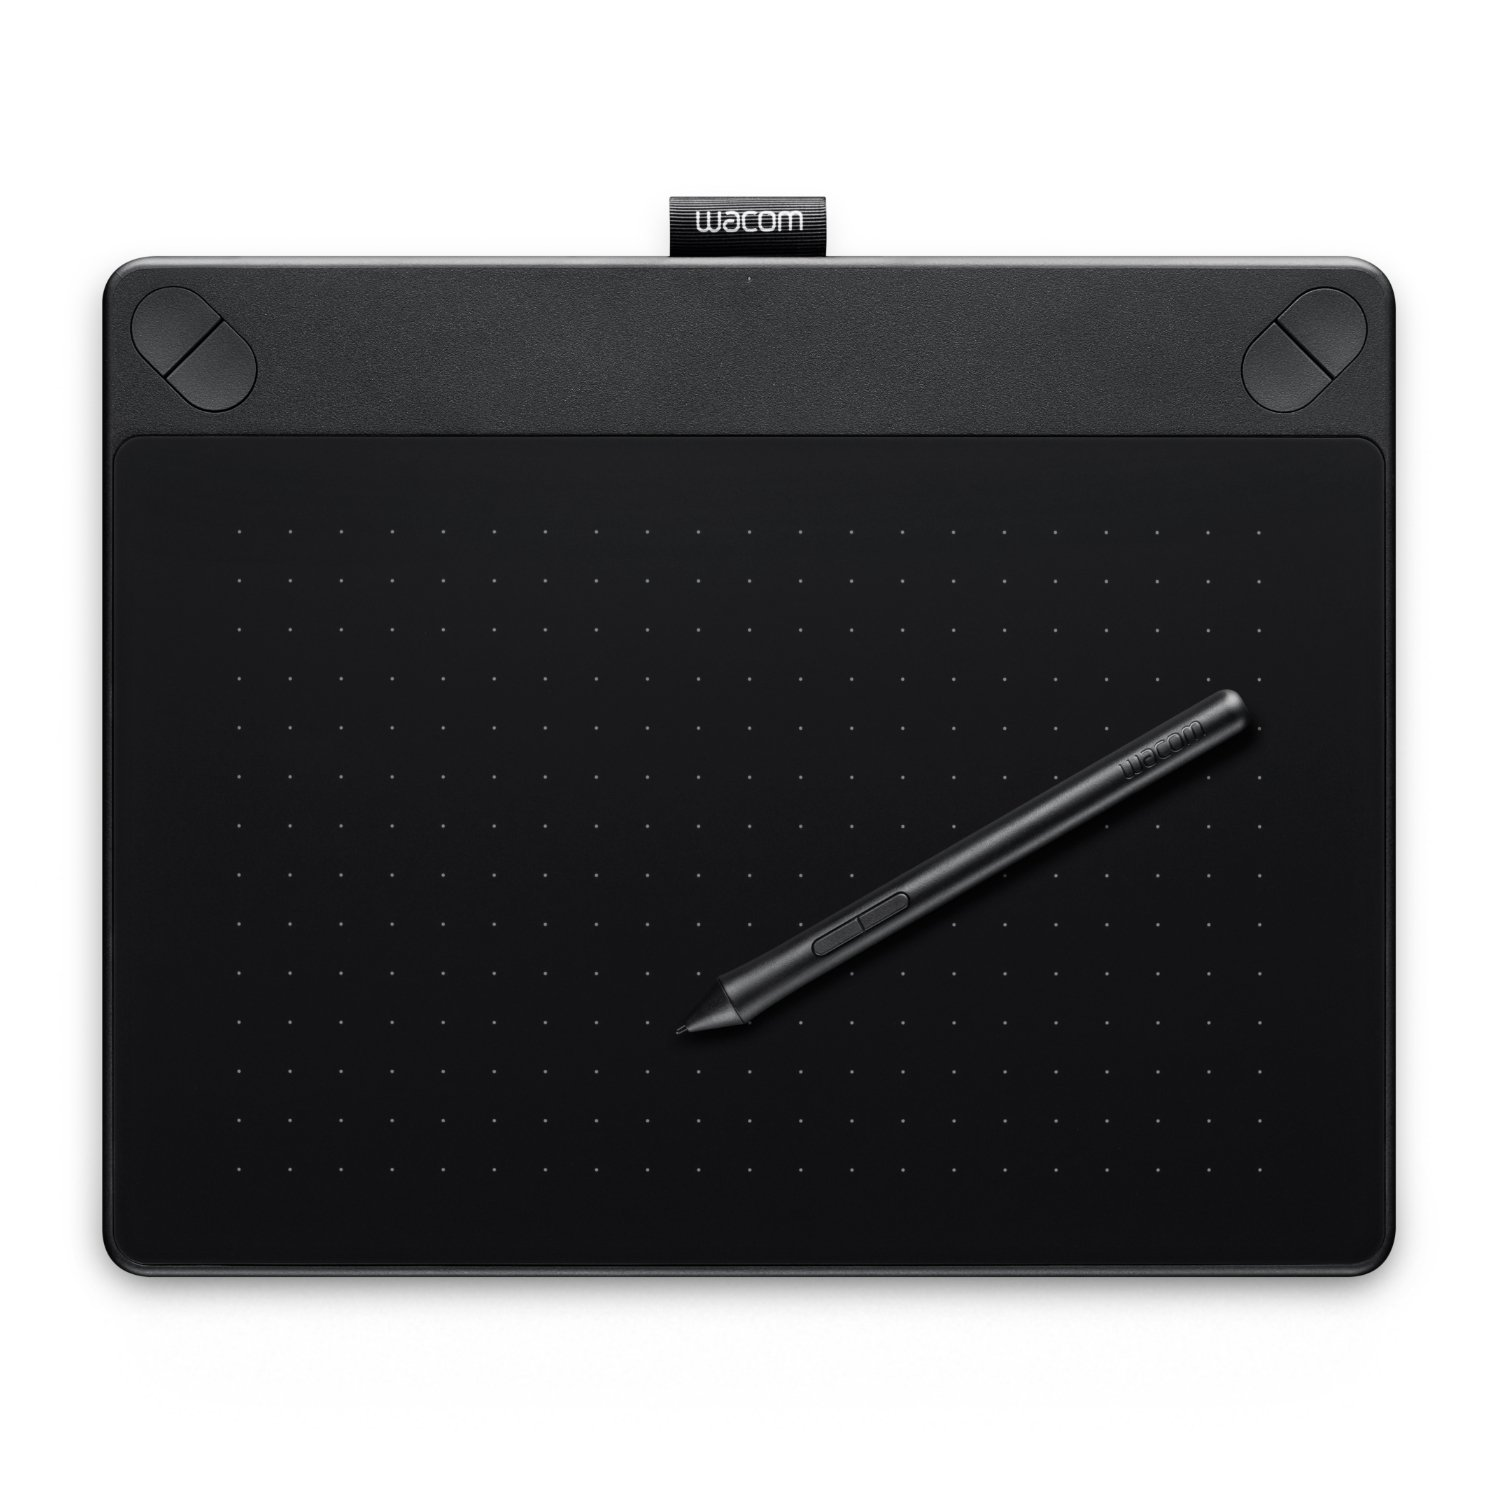 Wacom Intuos Comic Pen & Touch for the Manga illustration production model Size M Black CTH-690 / K1 by Wacom